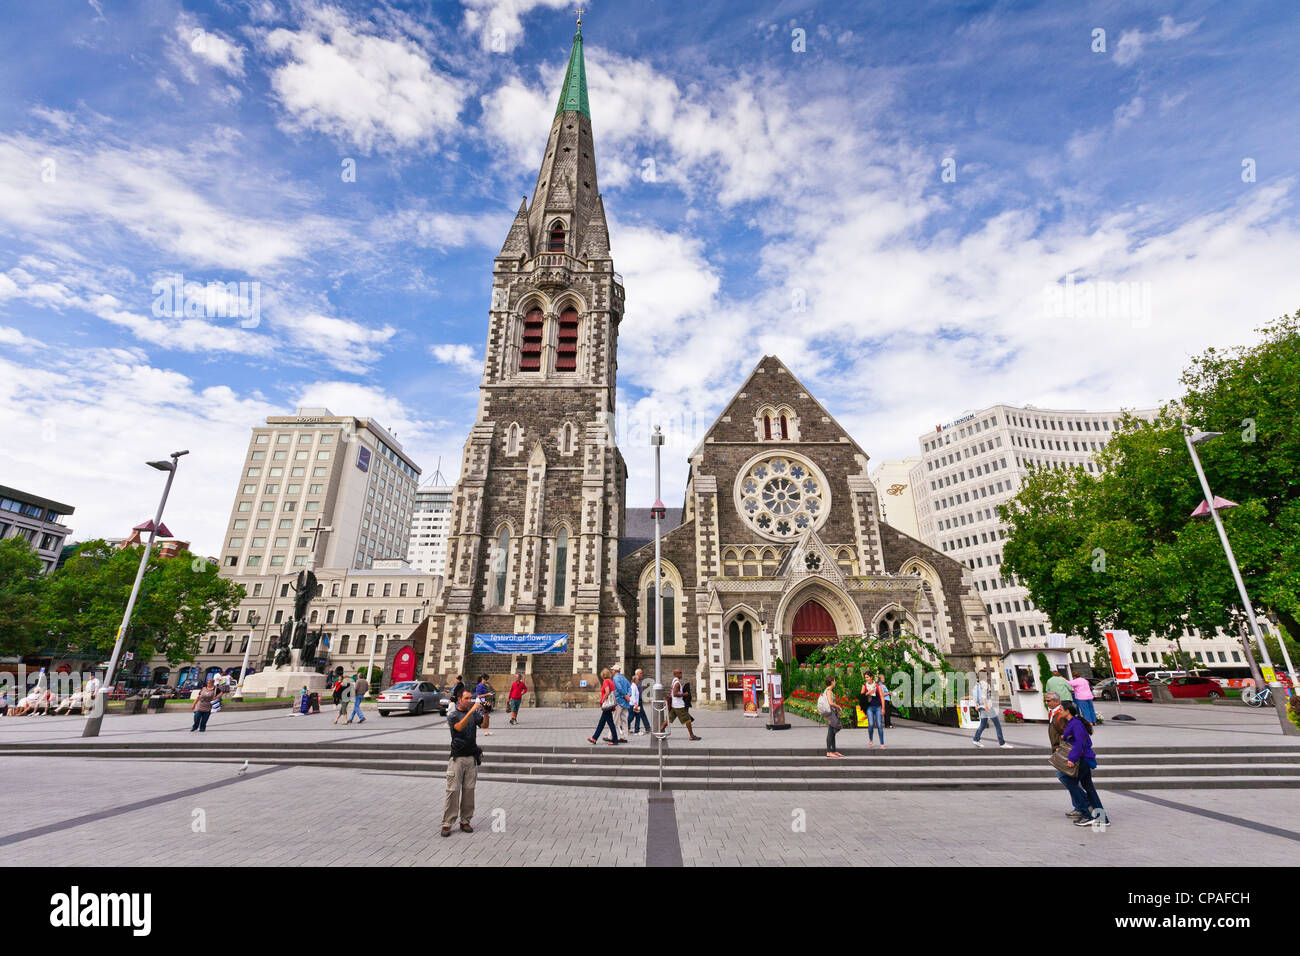 Visitors in Cathedral Square, Christchurch, on a bright overcast day in summer. - Stock Image